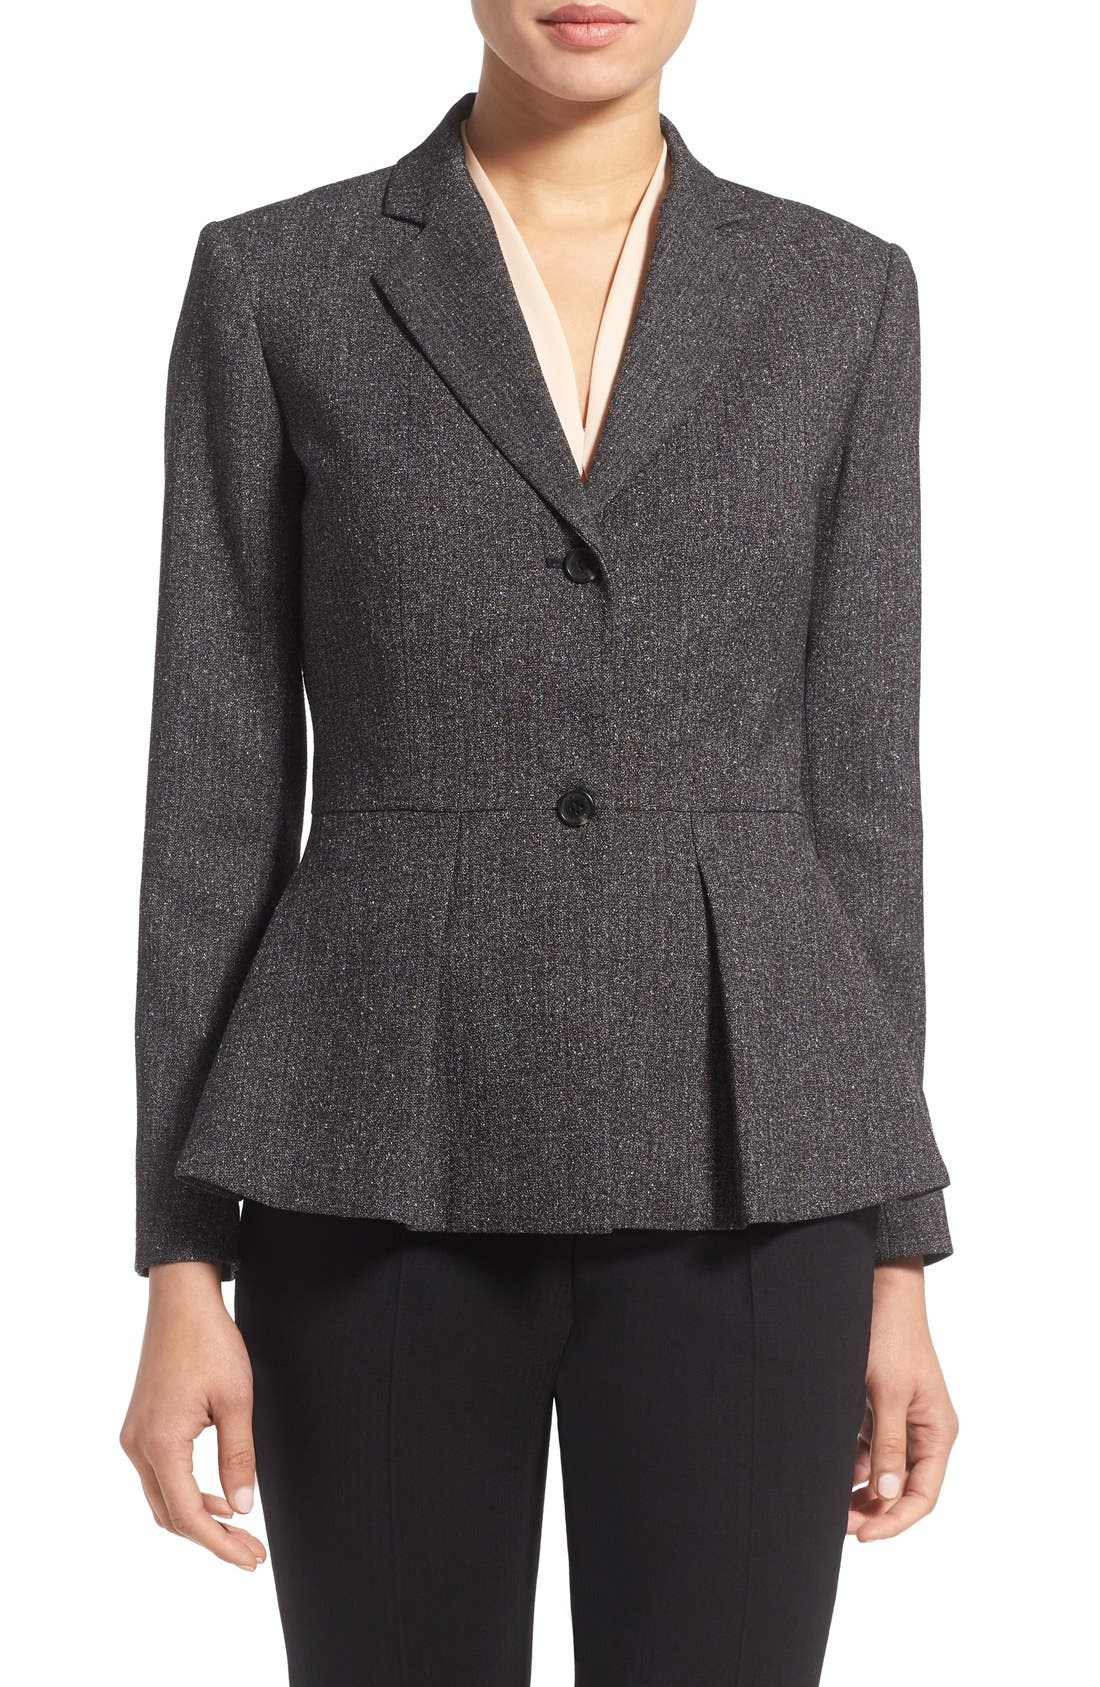 Alternate Image 1 Selected - Vince Camuto Tweed Peplum Blazer (Regular & Petite)